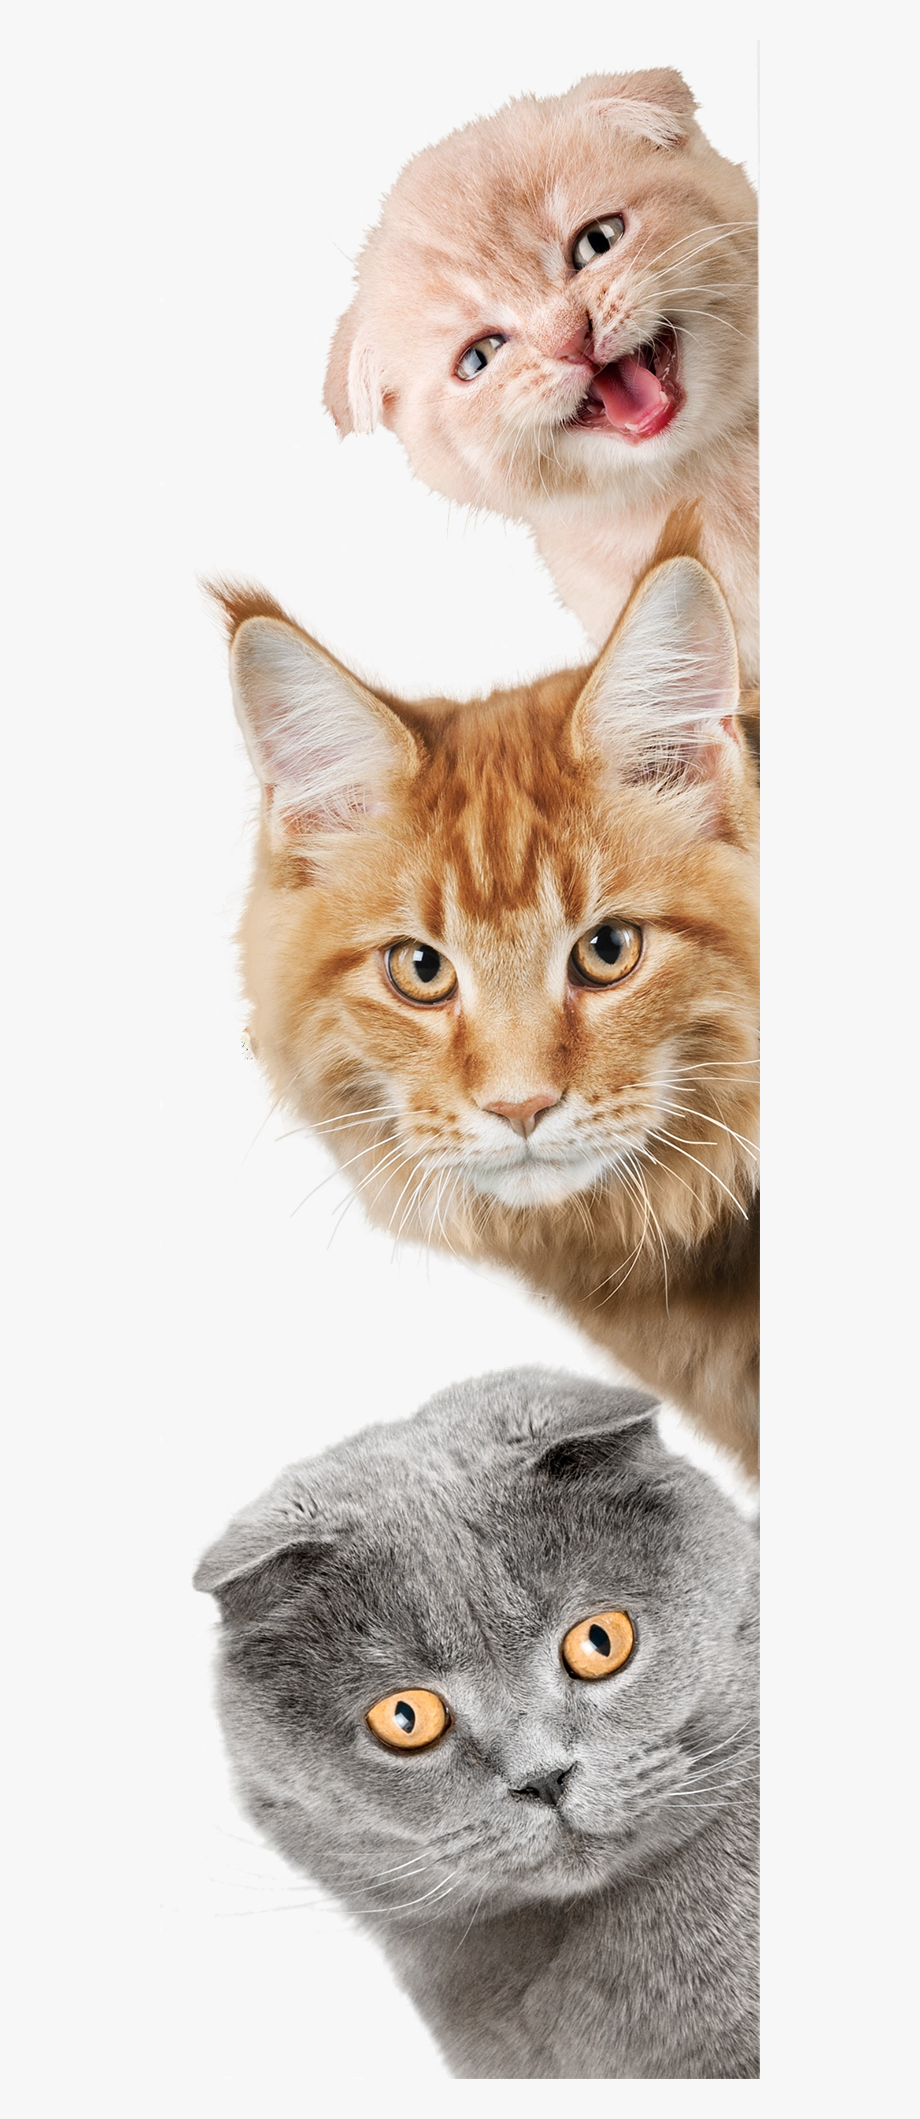 Cat Laying Down Png Cat And Dog Wallpa 1299608 Png Images Pngio